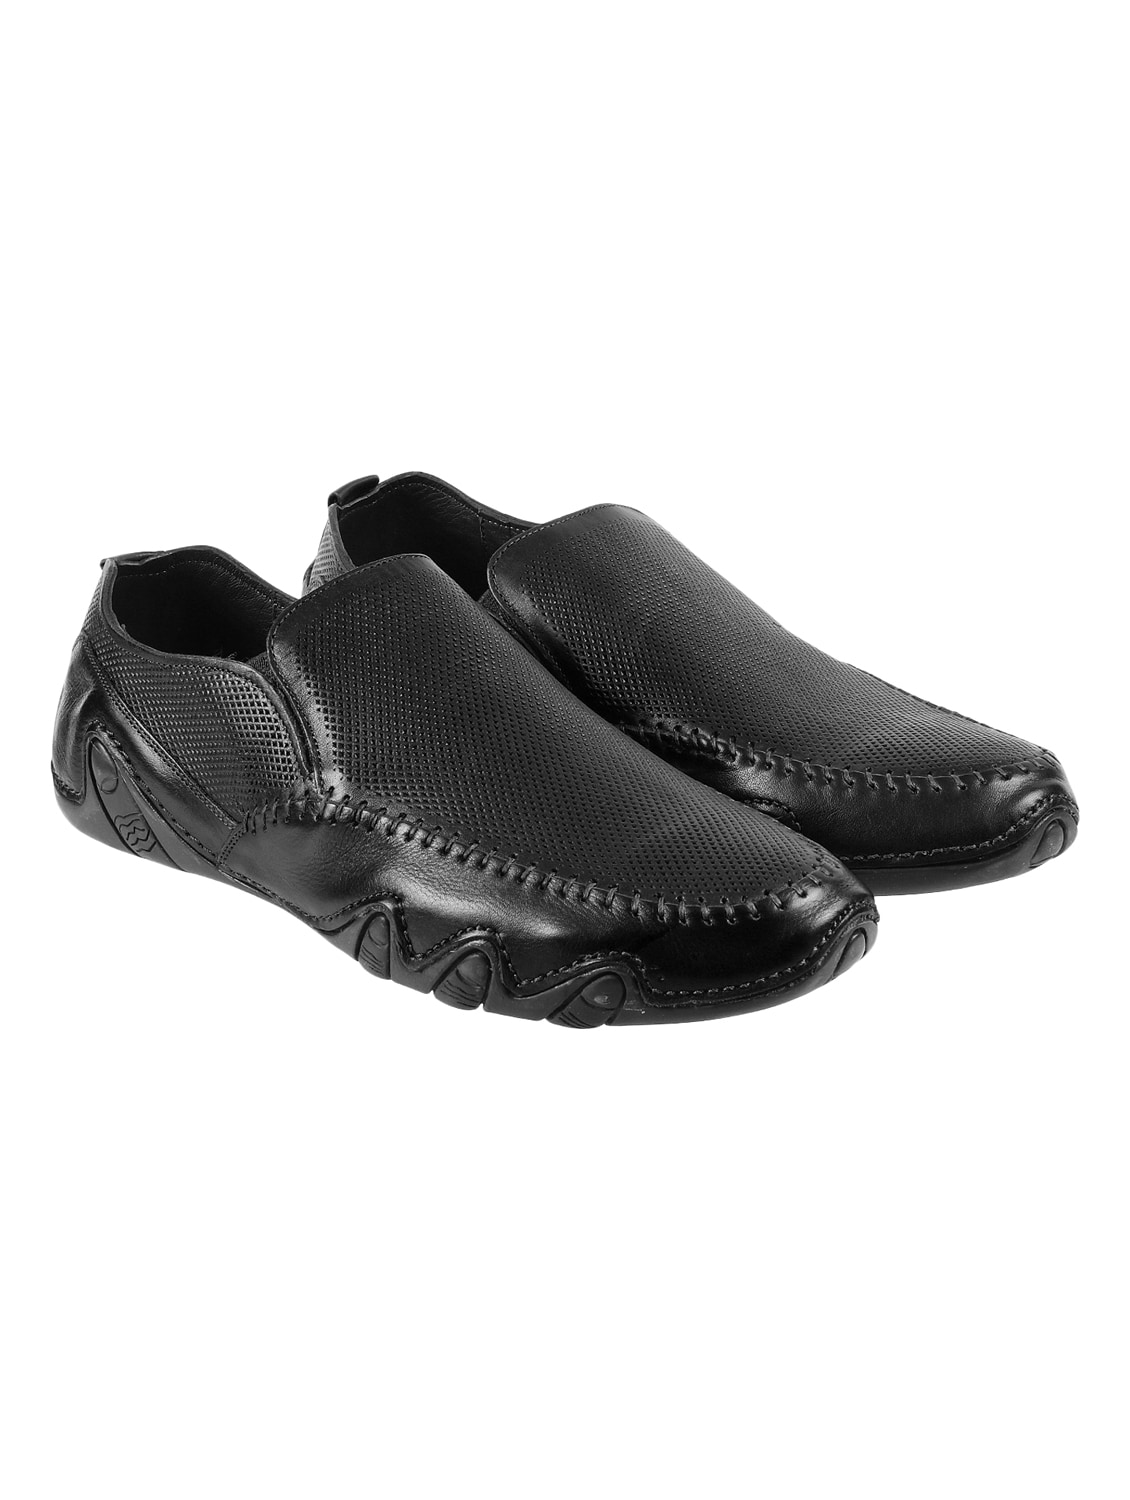 Black Slip On Loafers from Casual Shoes